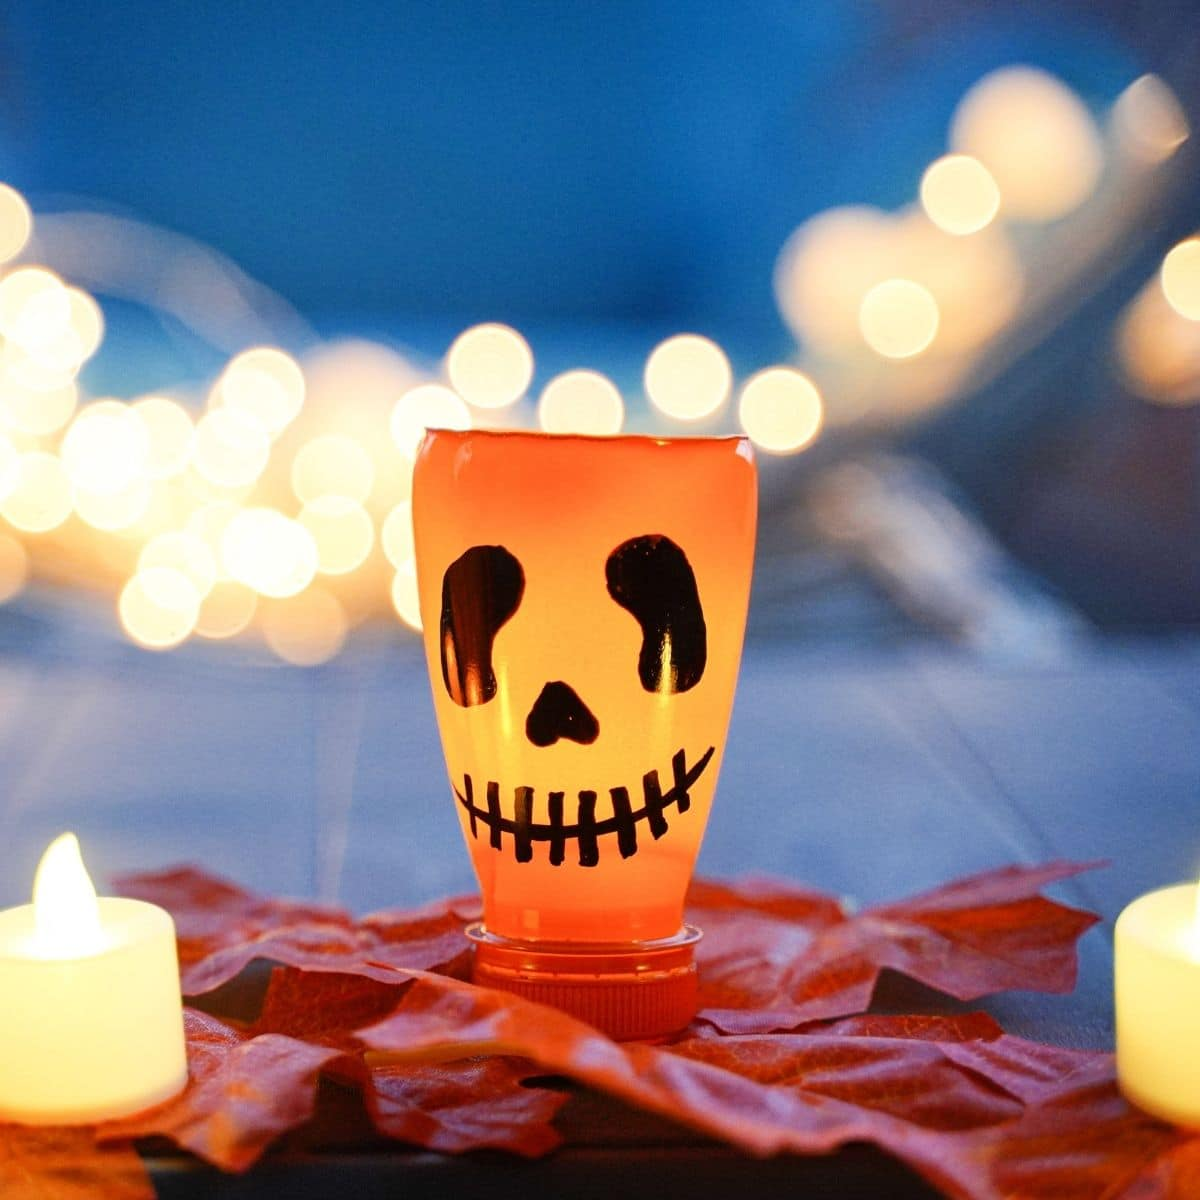 Pumpkin lantern on leaves with candles